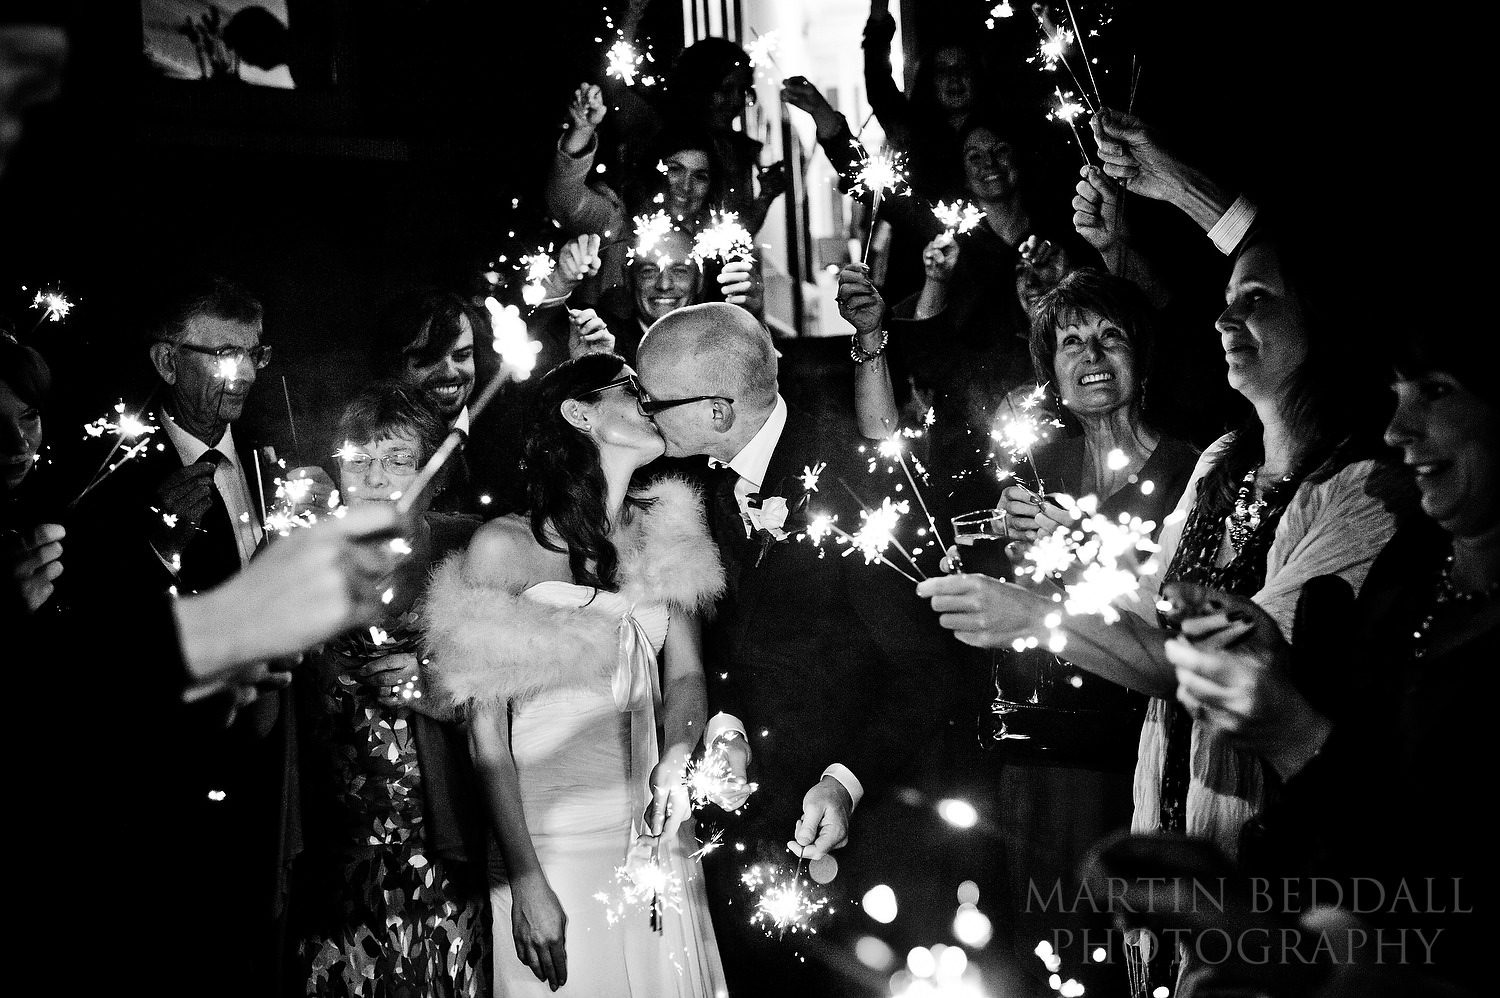 Sparklers at a November 5th wedding in Hove